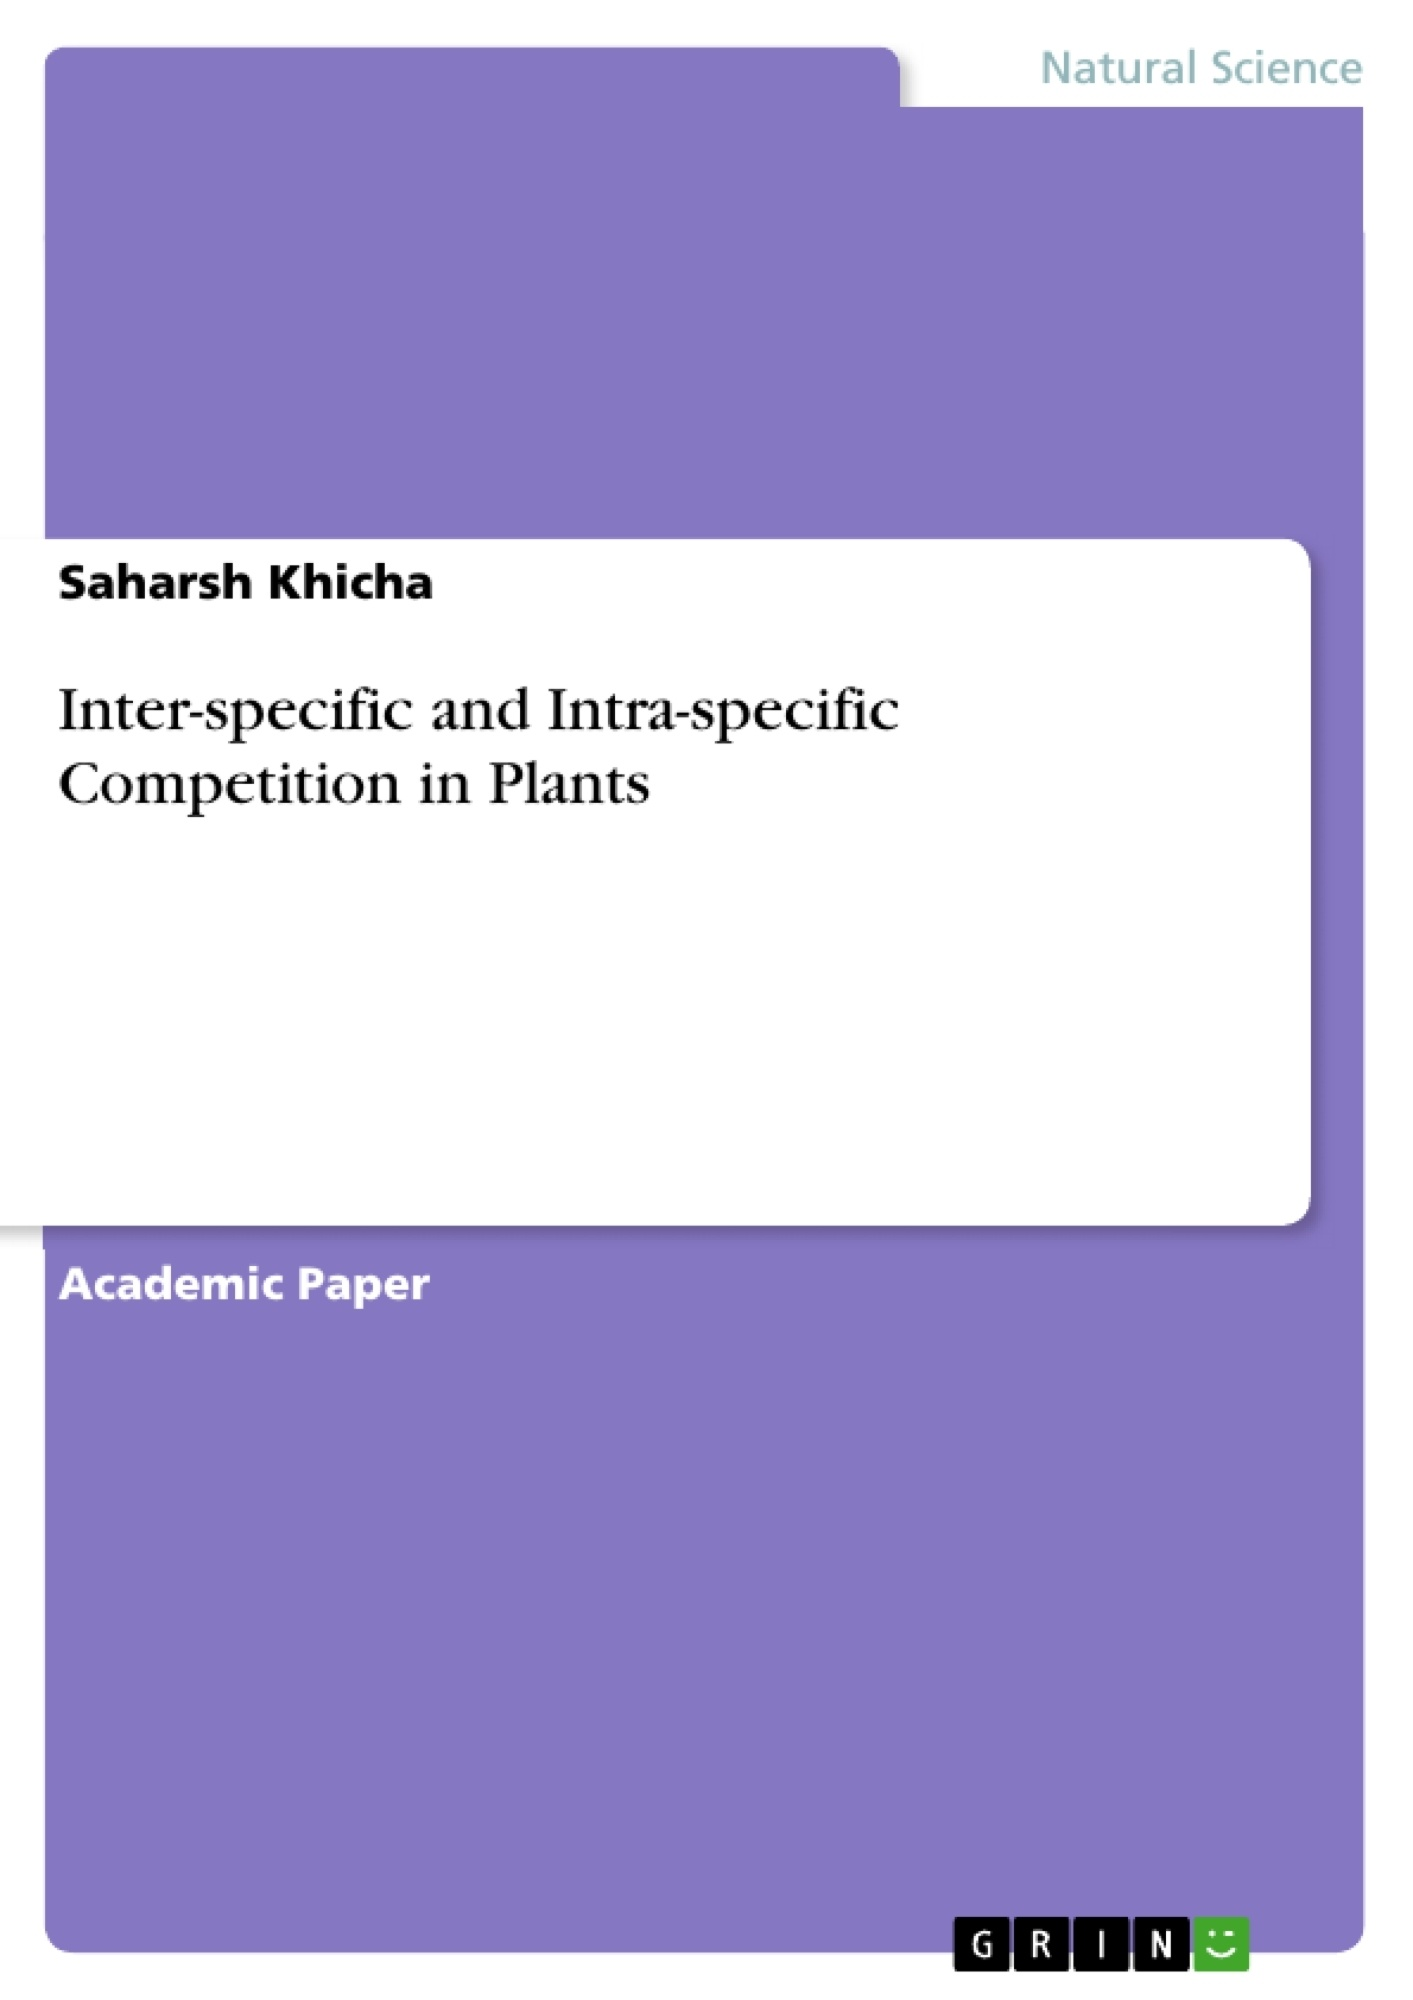 Title: Inter-specific and Intra-specific Competition in Plants